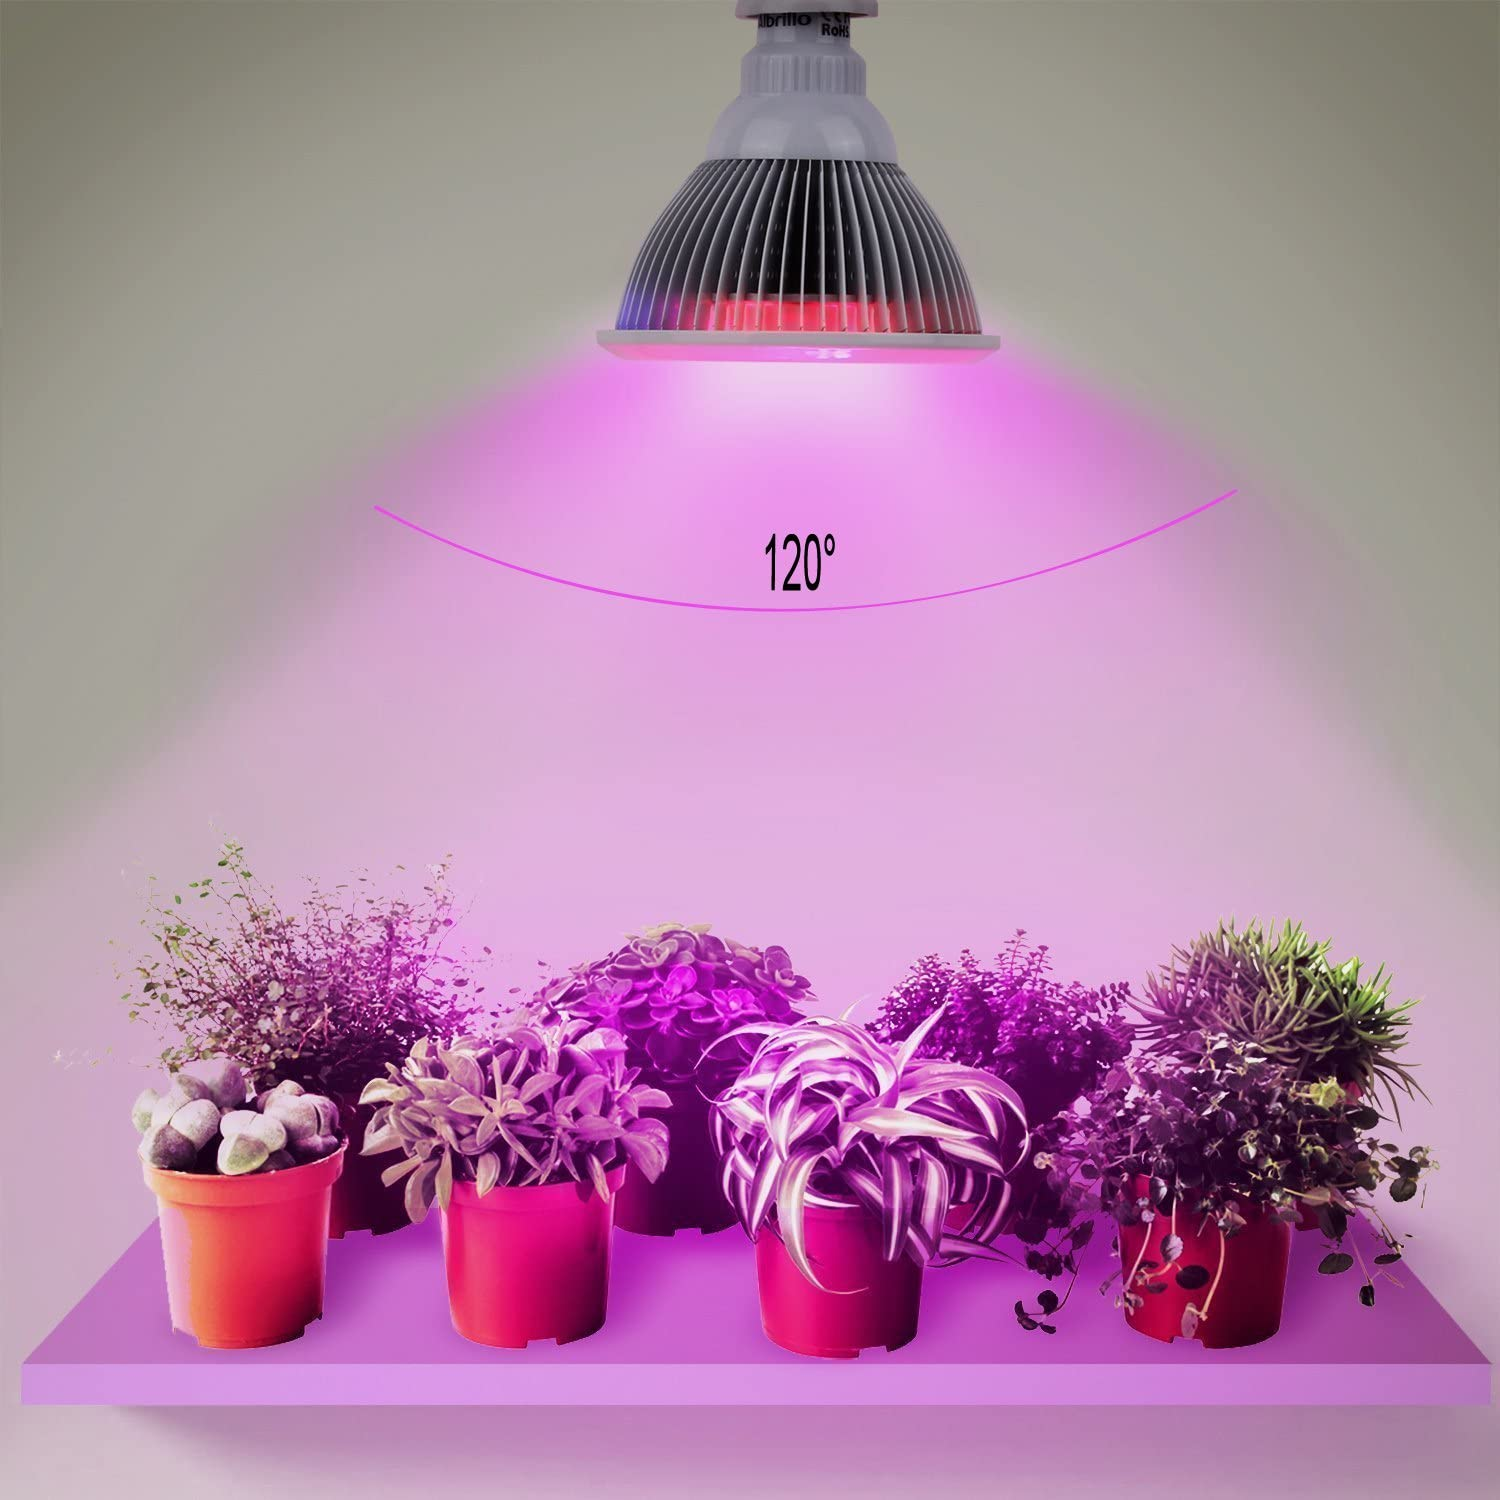 LED Grow Light Bulb Full Spectrum High Effcient LED Growing Bulbs Freal Indoor Garden Plants Lamp for Hydroponic Aquatic and Greenhouse Planting Flower 50W 78LEDs 120 Degree Wide Area Coverage